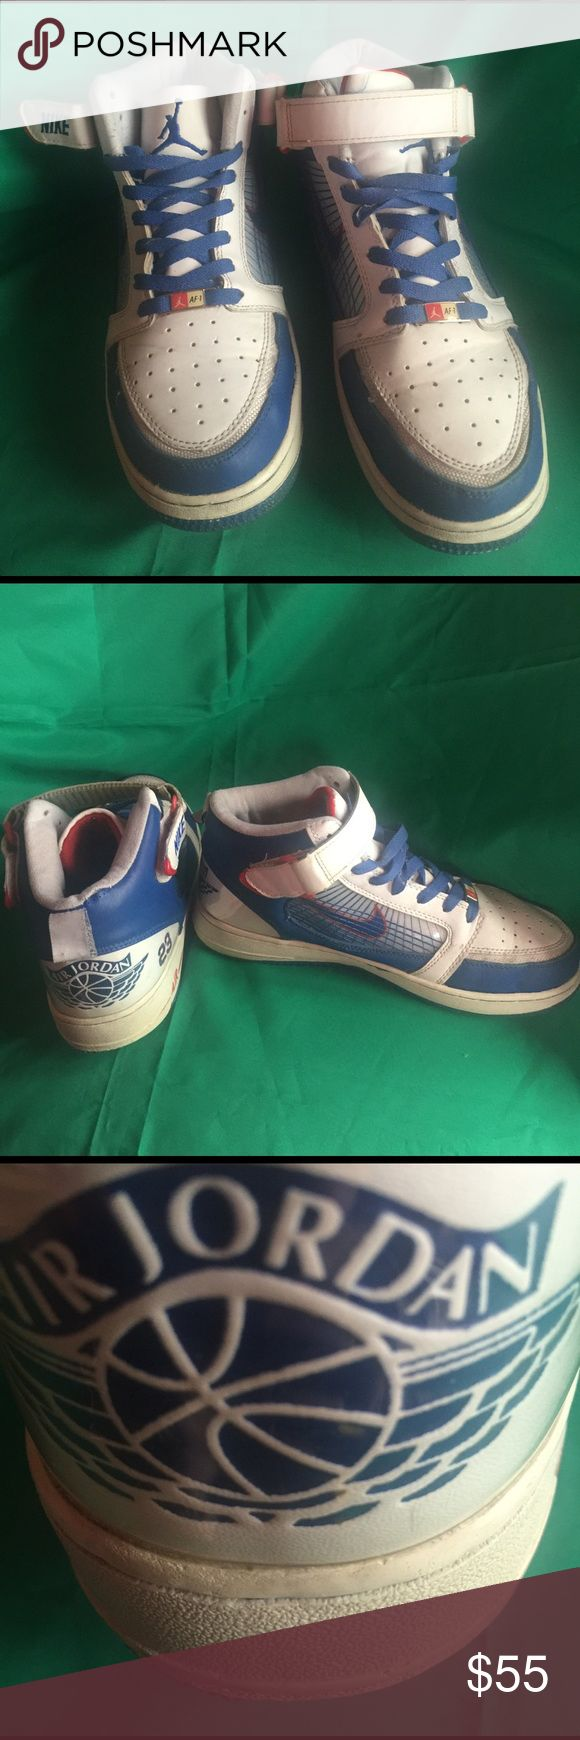 Men's Nike Air Jordan AF-1  23's basketball shoes. Men's retro Nike Air Jordan AF-1  23's blue/white/red colored basketball shoes size 8 1/2. In great condition. Not to many left, difficult to find. Any questions please feel free to contact me. Nike Air Jordan AF-1 23's Shoes Athletic Shoes